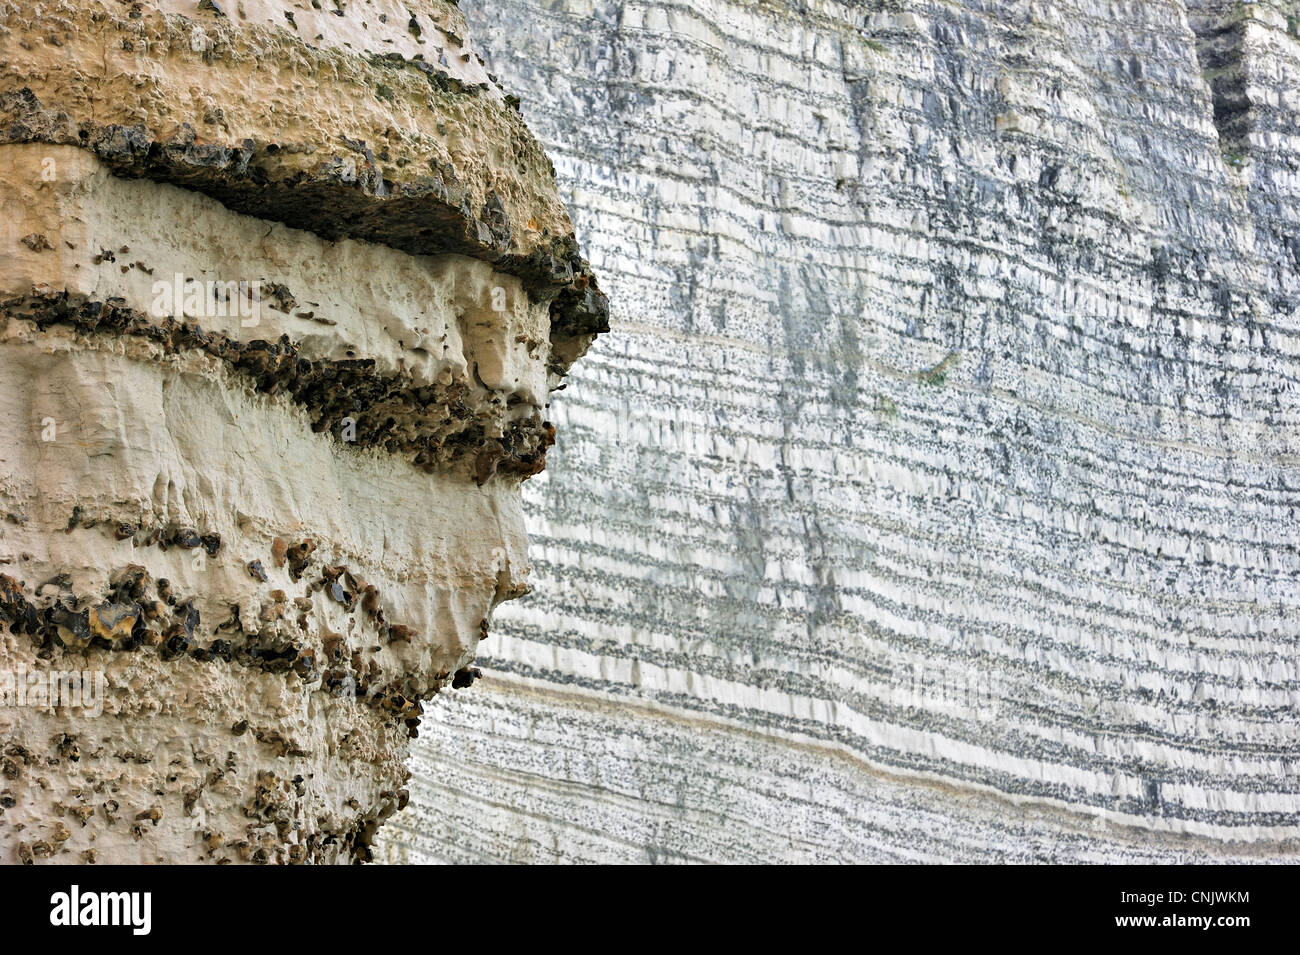 Layers of flint / chert in chalk cliff at Etretat, Upper Normandy, France - Stock Image